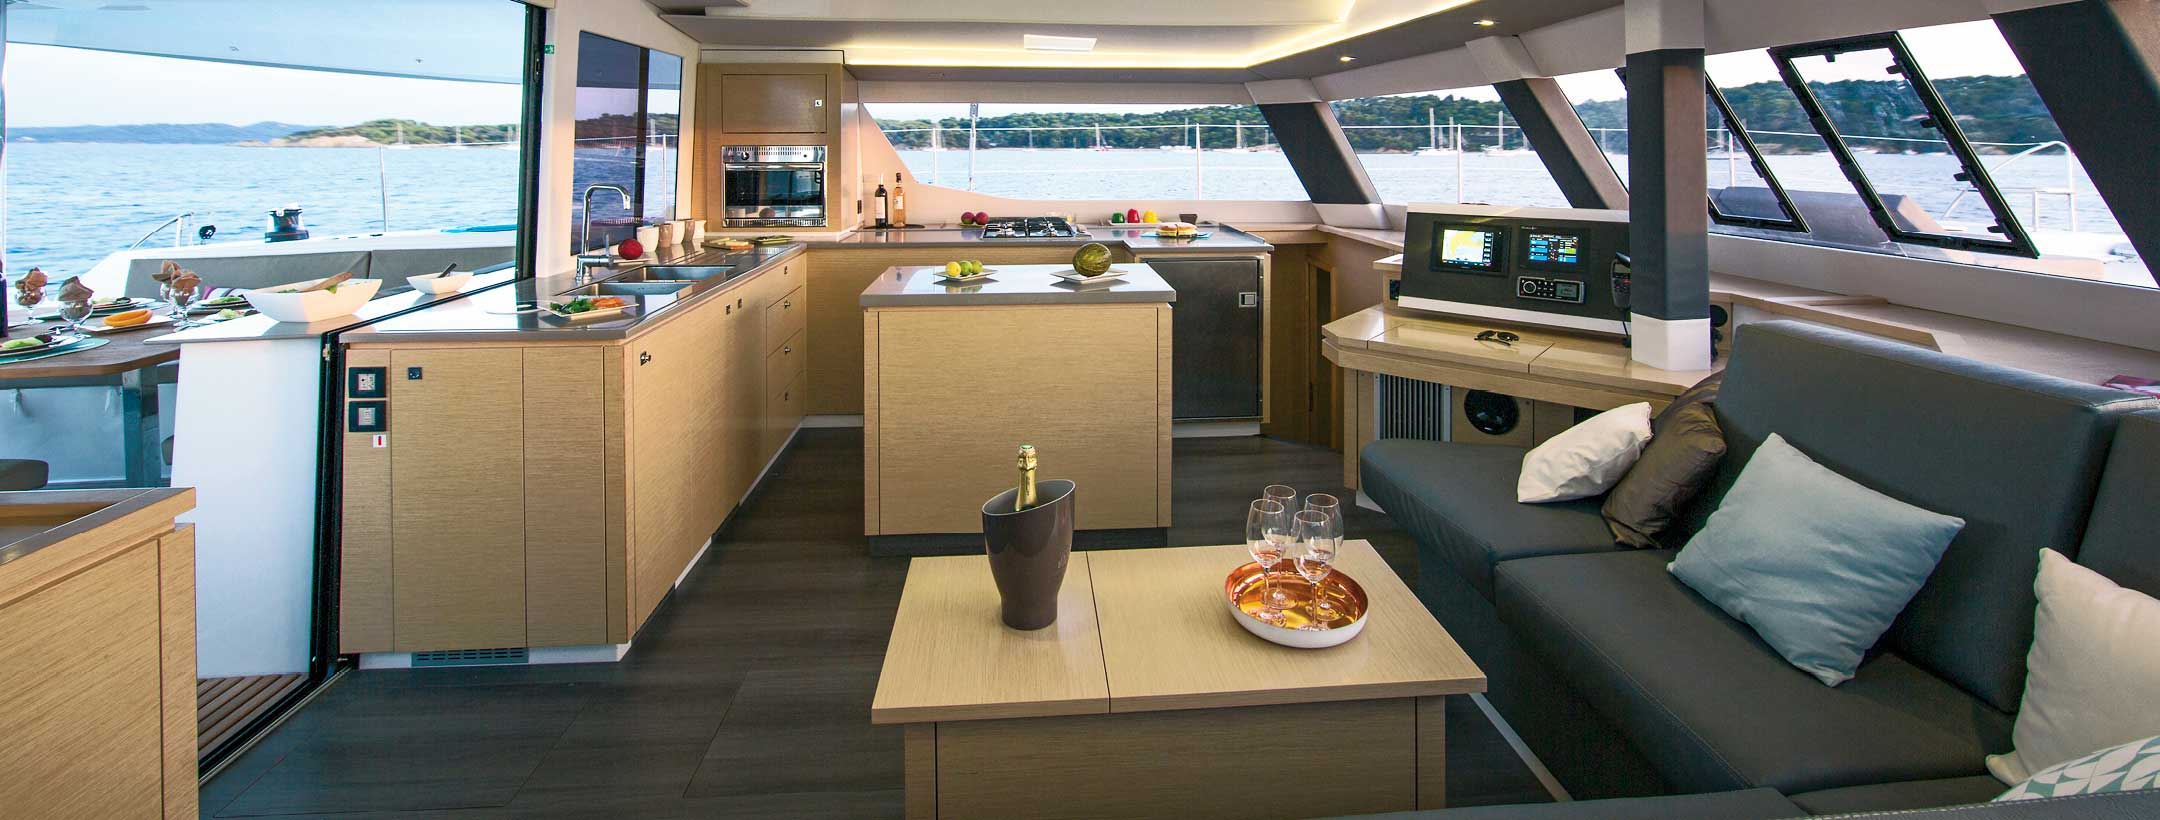 TradeWinds 52 Cruising Class Yacht kitchen